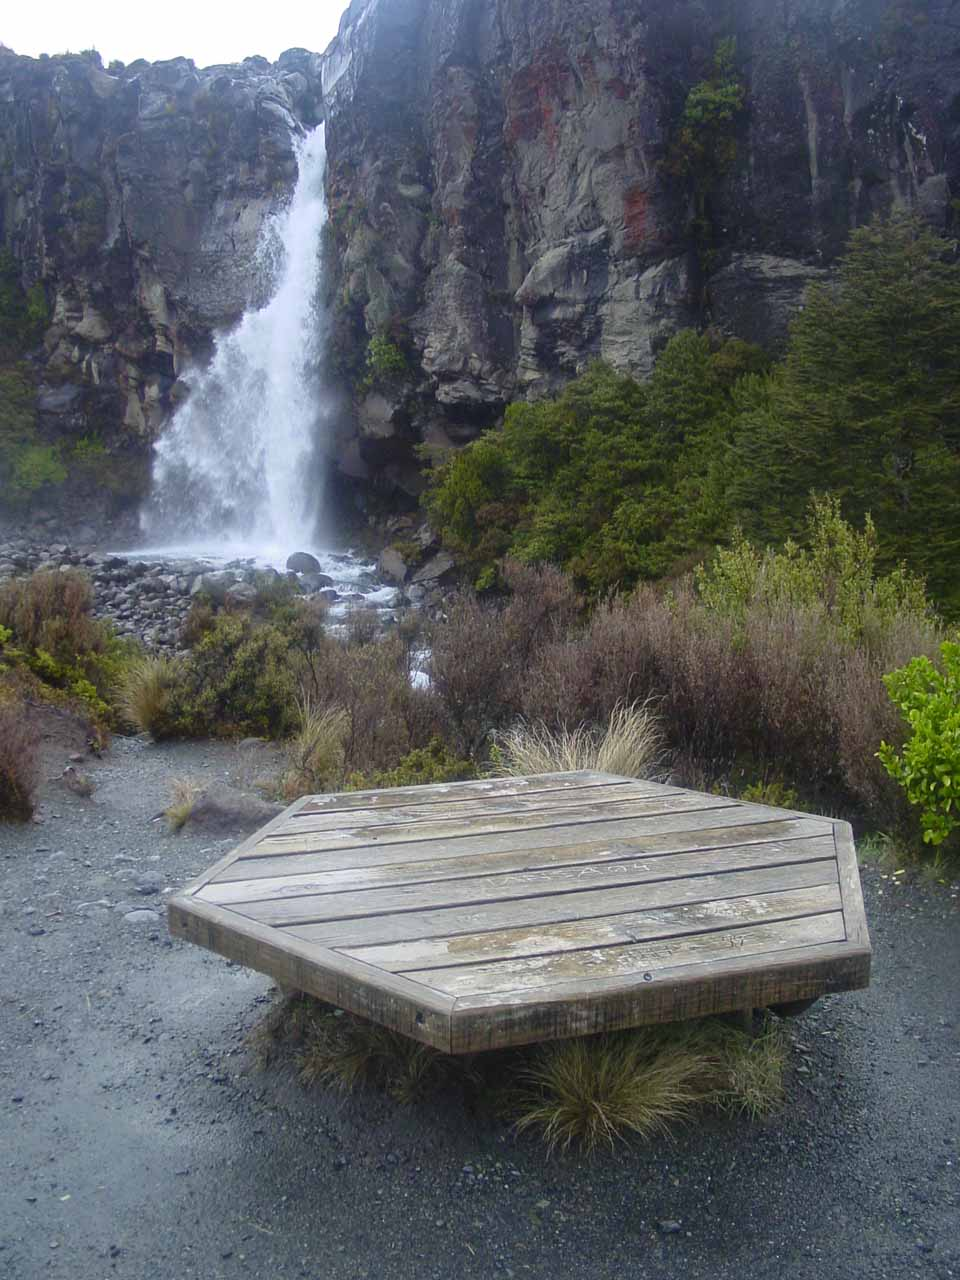 Looking at Taranaki Falls with some weird hexagonal table that I wasn't sure what it was for